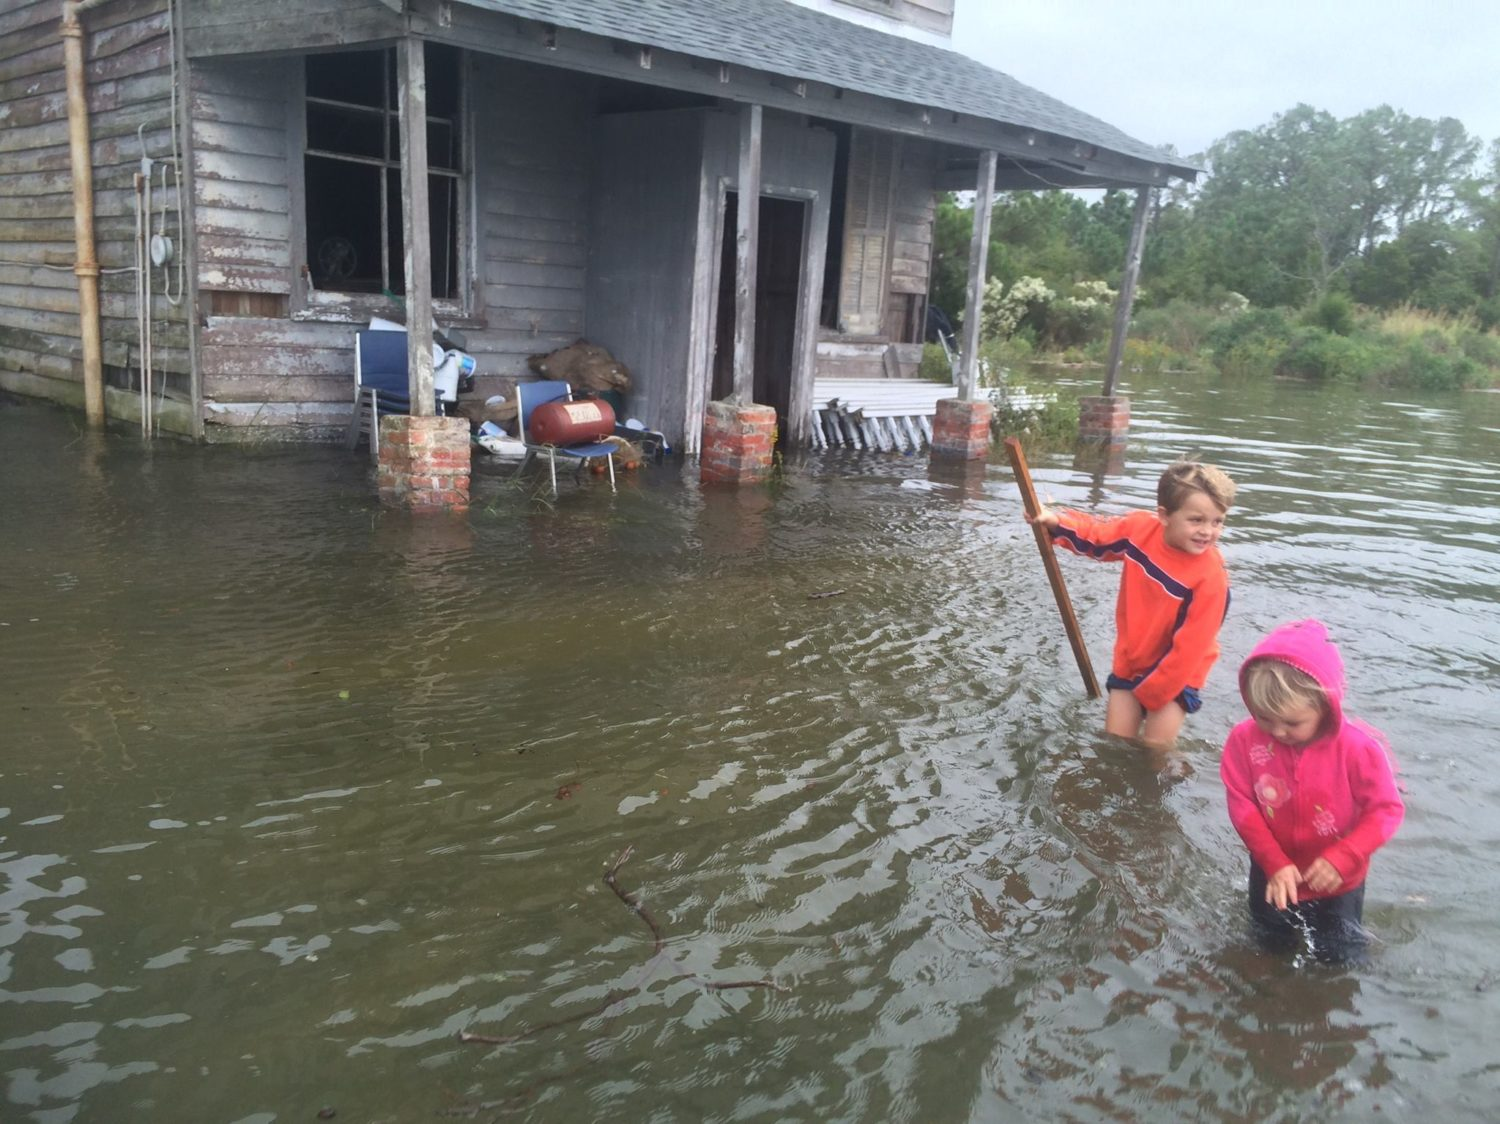 children wage in waist high water in front of flooded house